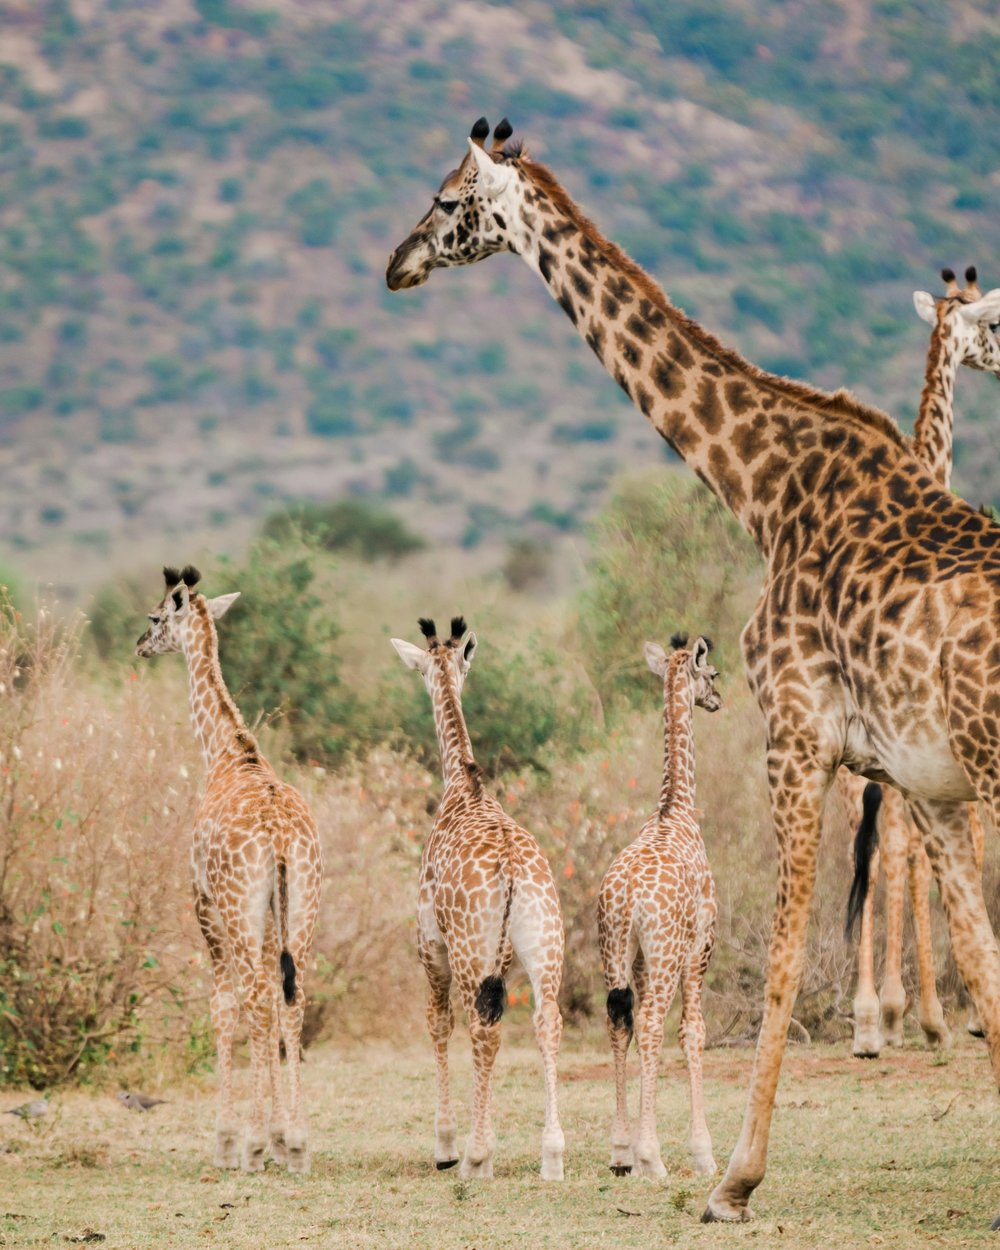 Giraffes on Safari in Kenya Ph. Valorie Darling